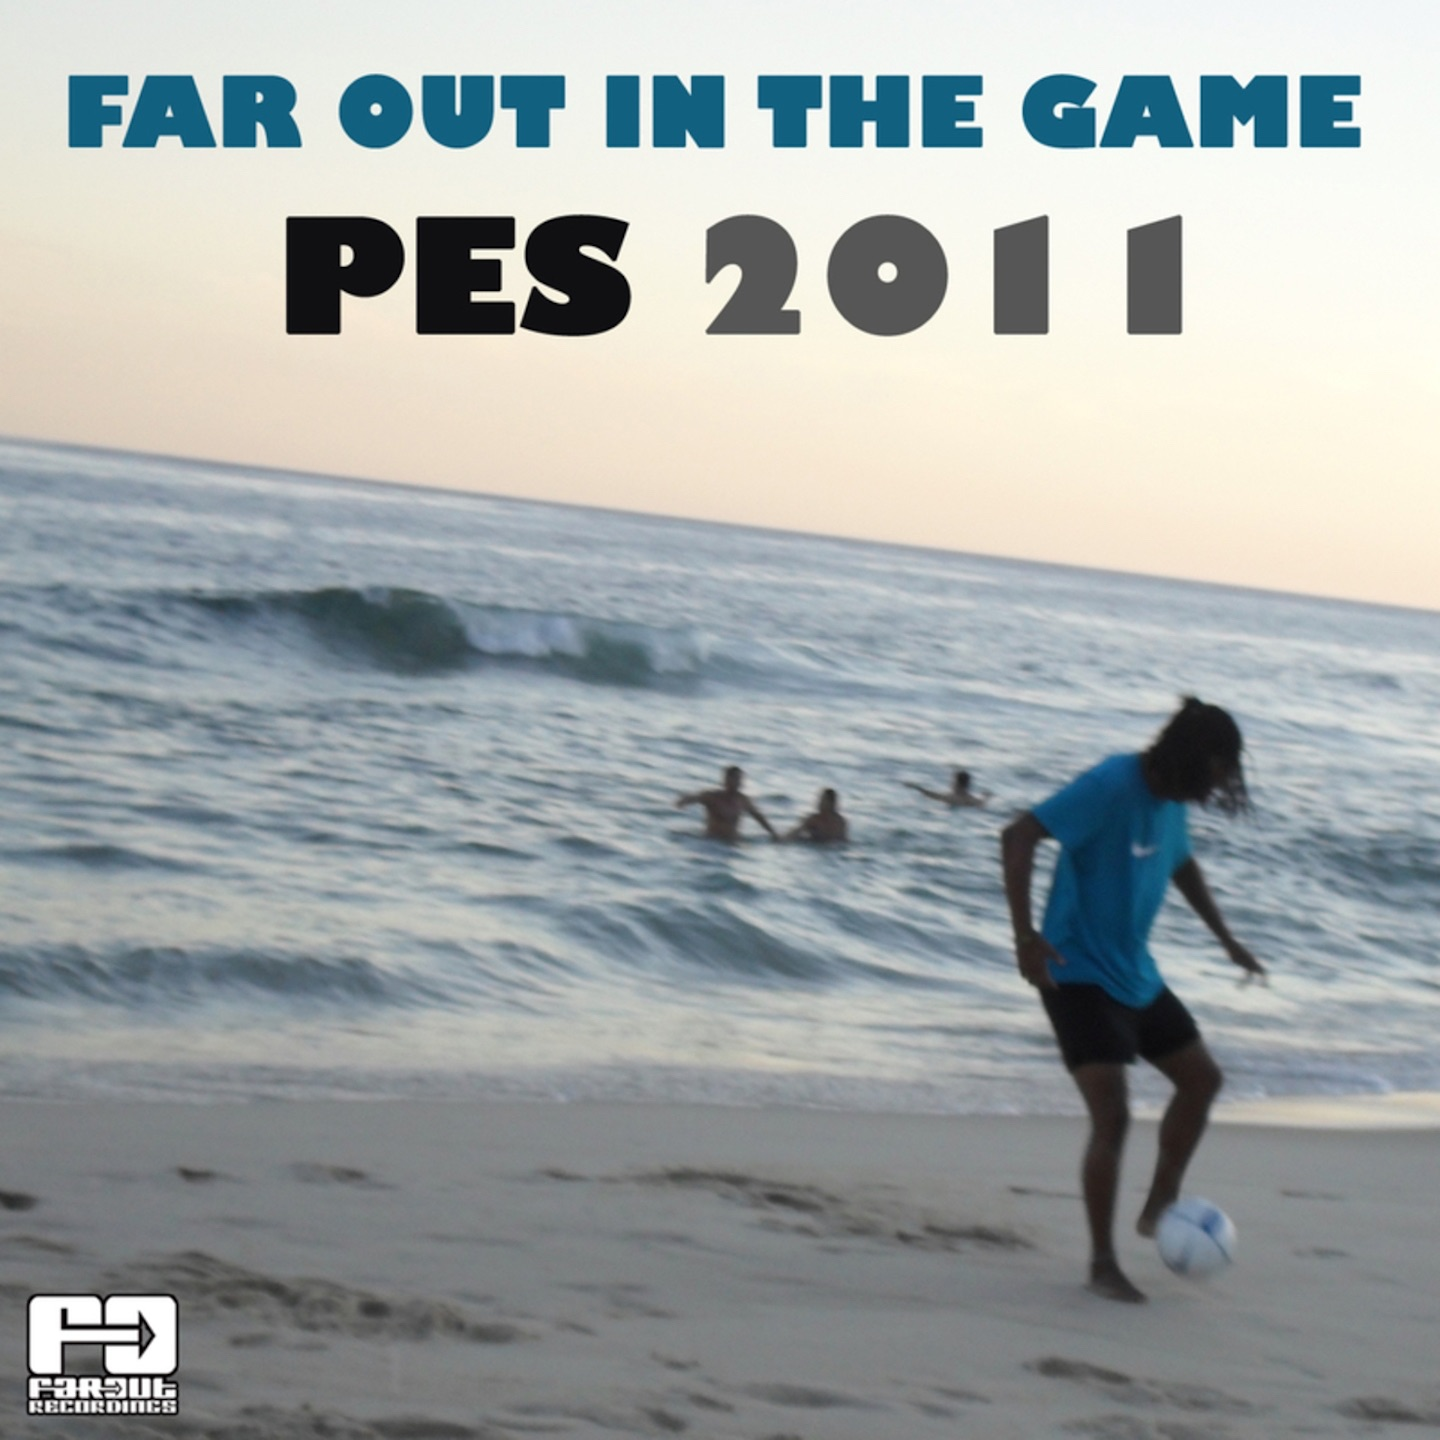 Far Out in the Game (PES 2011) - Single